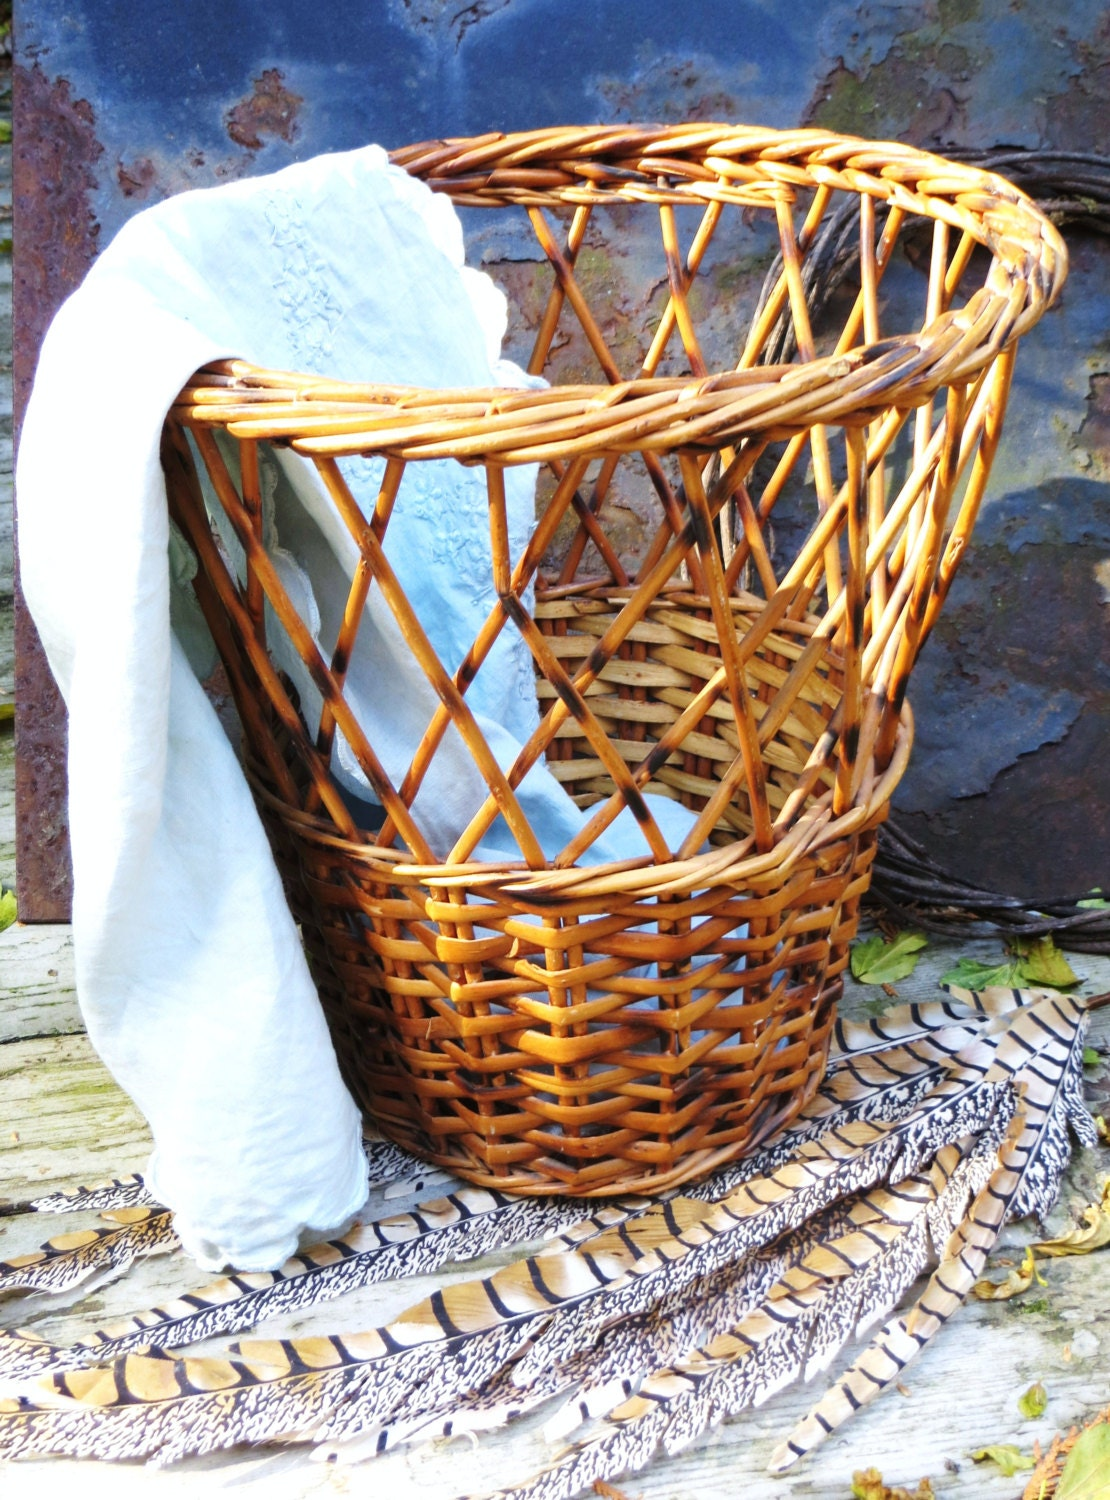 Woven rattan basket waste basket vintage wicker rattan - Wicker trash basket ...